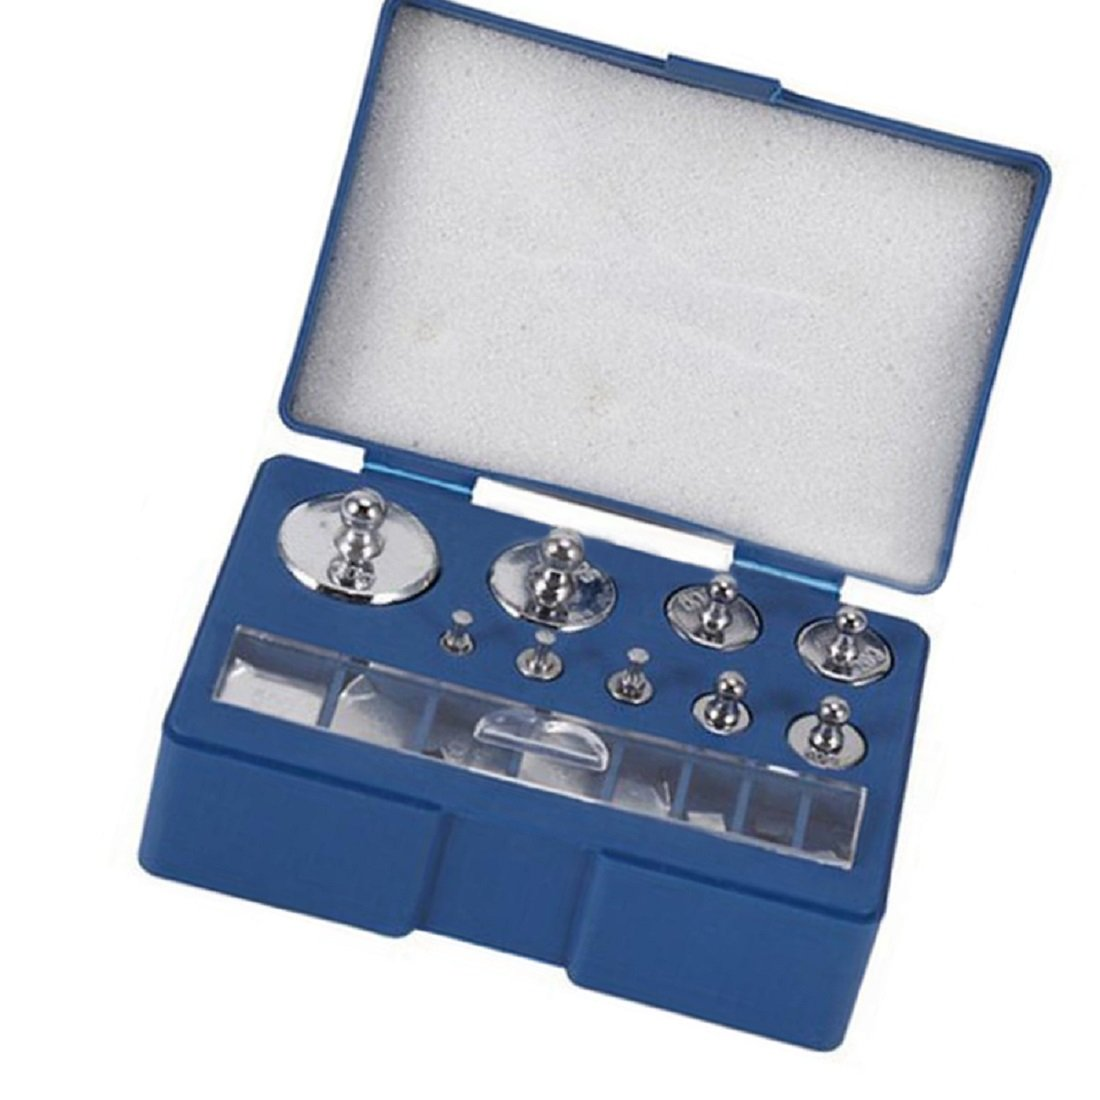 Tinsay Calibration Weight Kit-Precision Weight 10mg-100g Precision Calibration Steel Calibration Scale Weight Set for Digital Balance Scale, Jewellery Scale by Tinsay (Image #1)